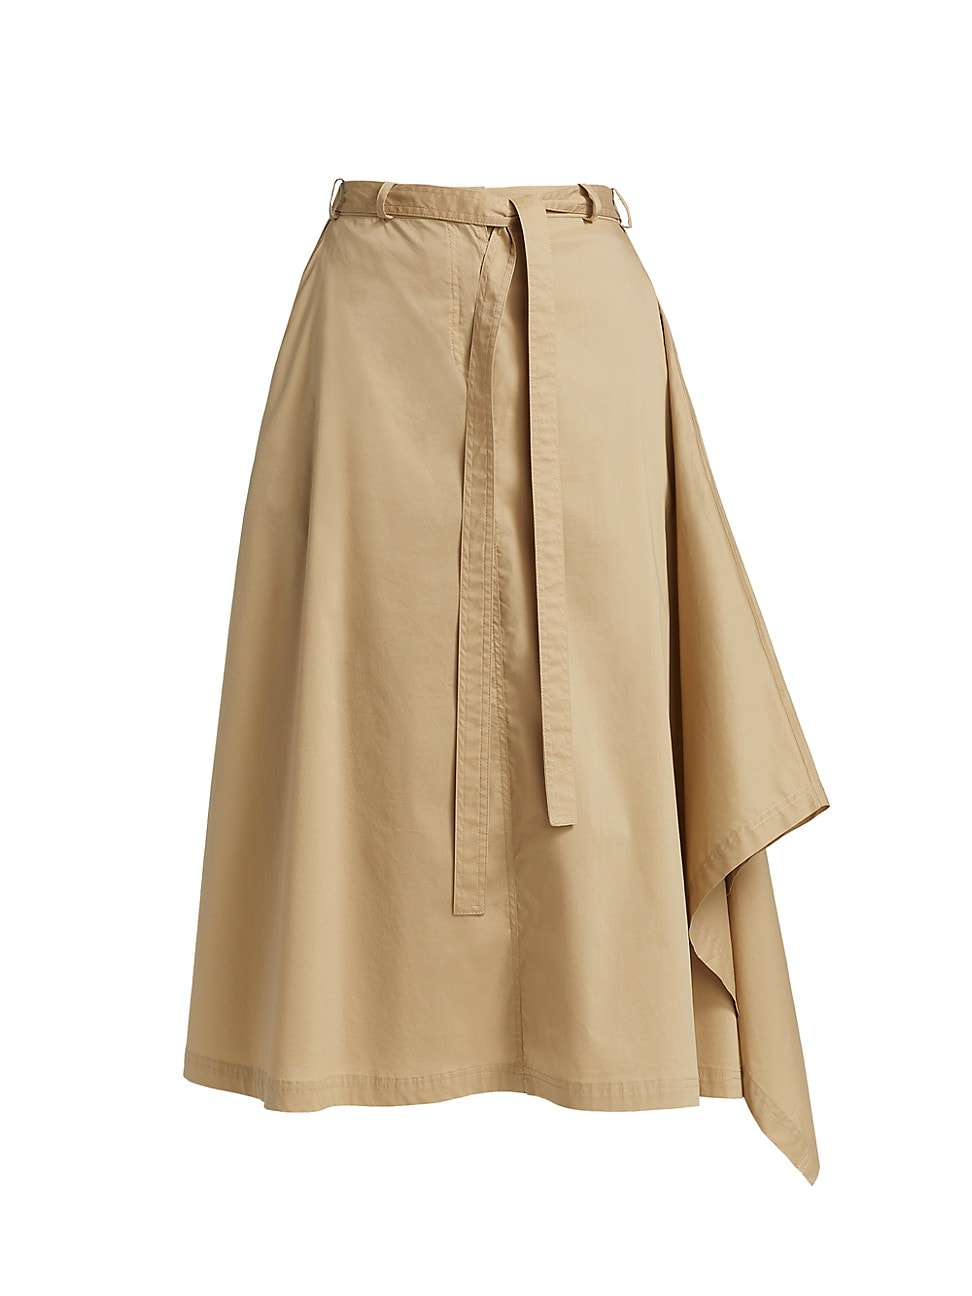 Halston WOMEN'S MINA BELTED COTTON SKIRT